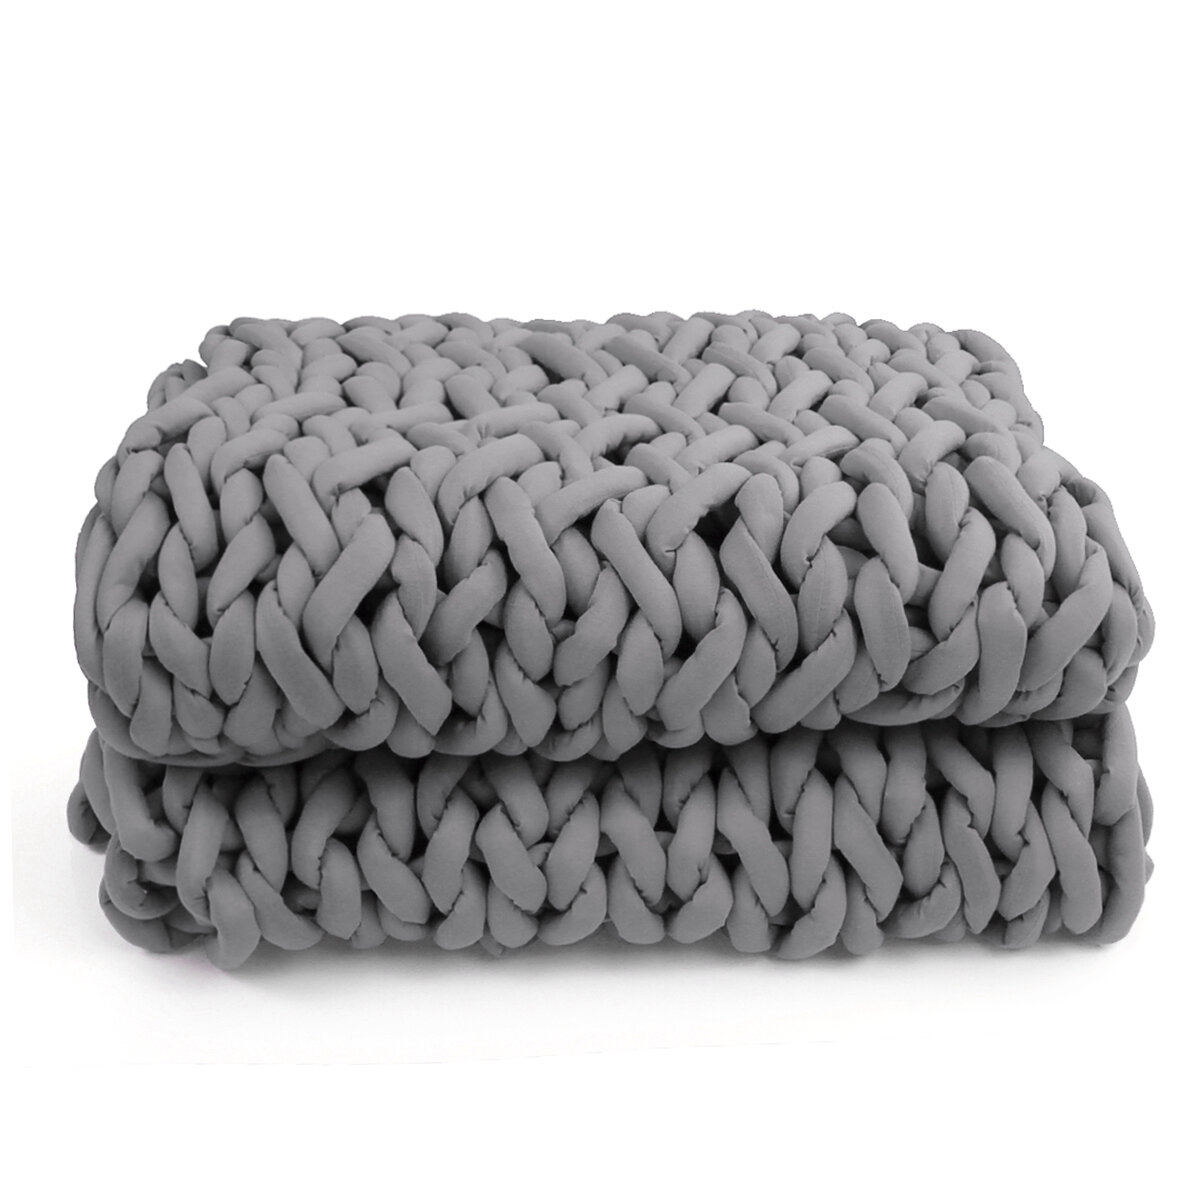 100x120cm Handmade Knitted Blankets Soft Warm Thick Line Cotton Throw Blankets - 3